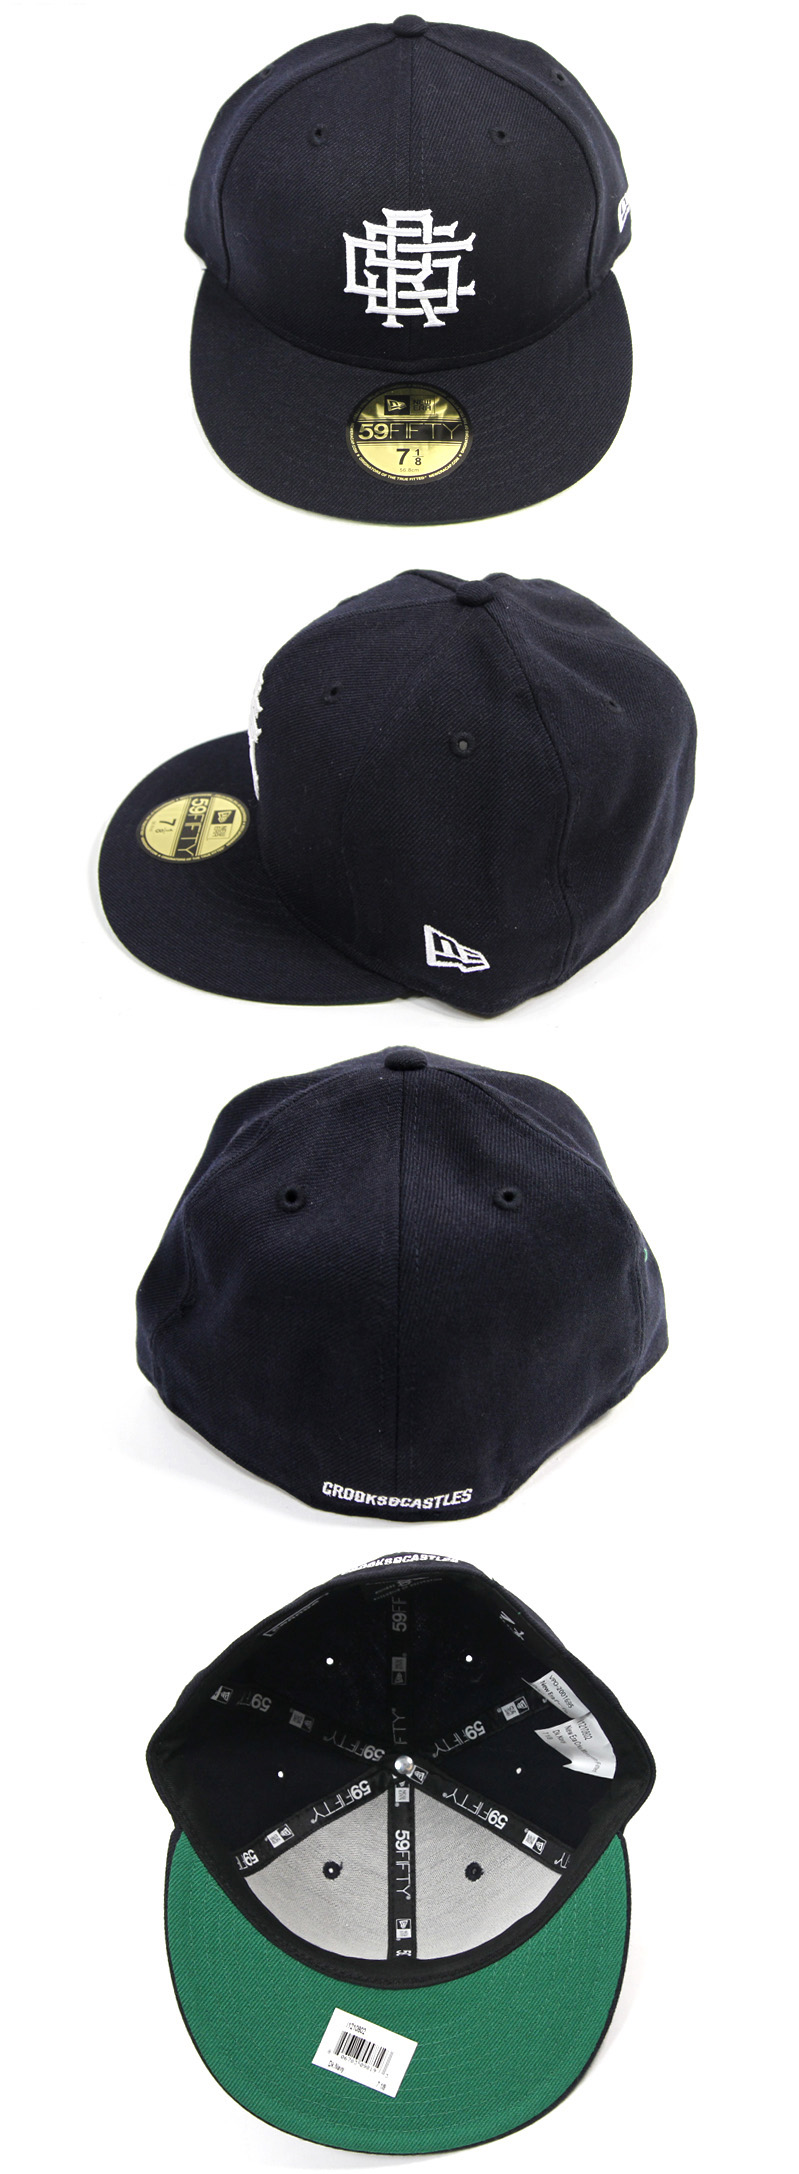 [크룩스앤캐슬] CROOKS&CASTLES CRKS MONOGRAM NEW ERA